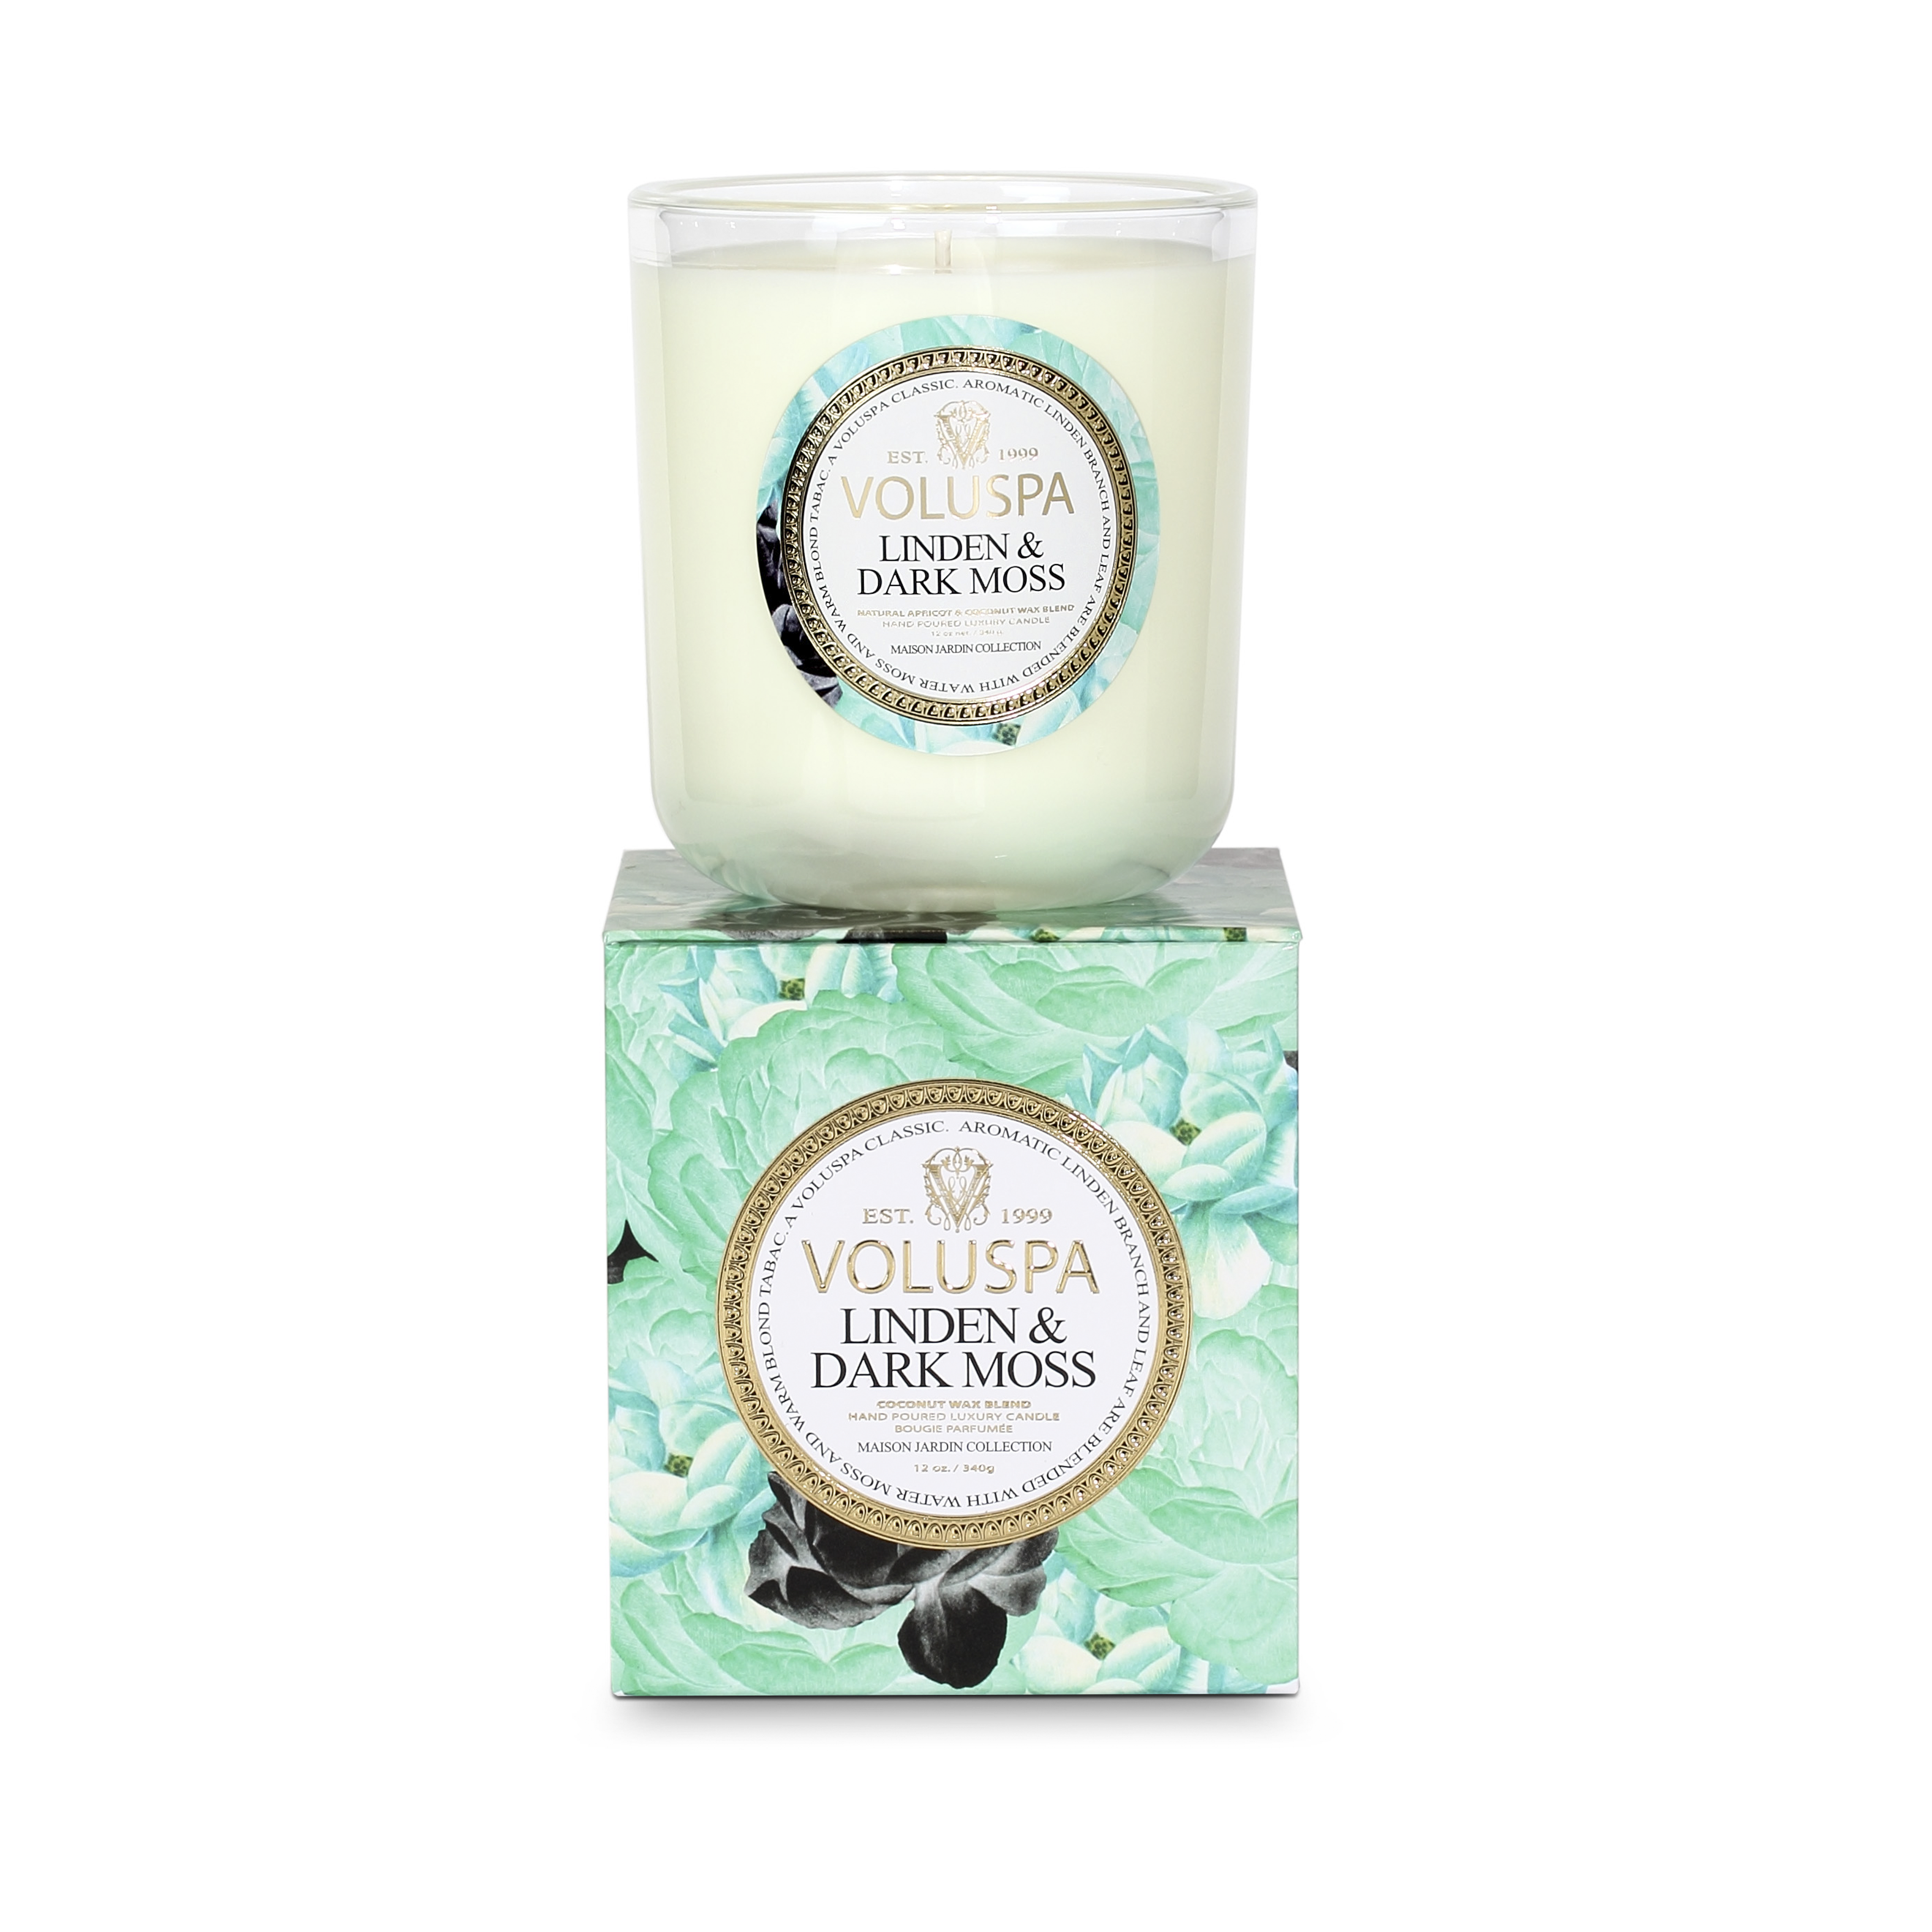 Dark Linden & Moss Classic Maison Scented Candle